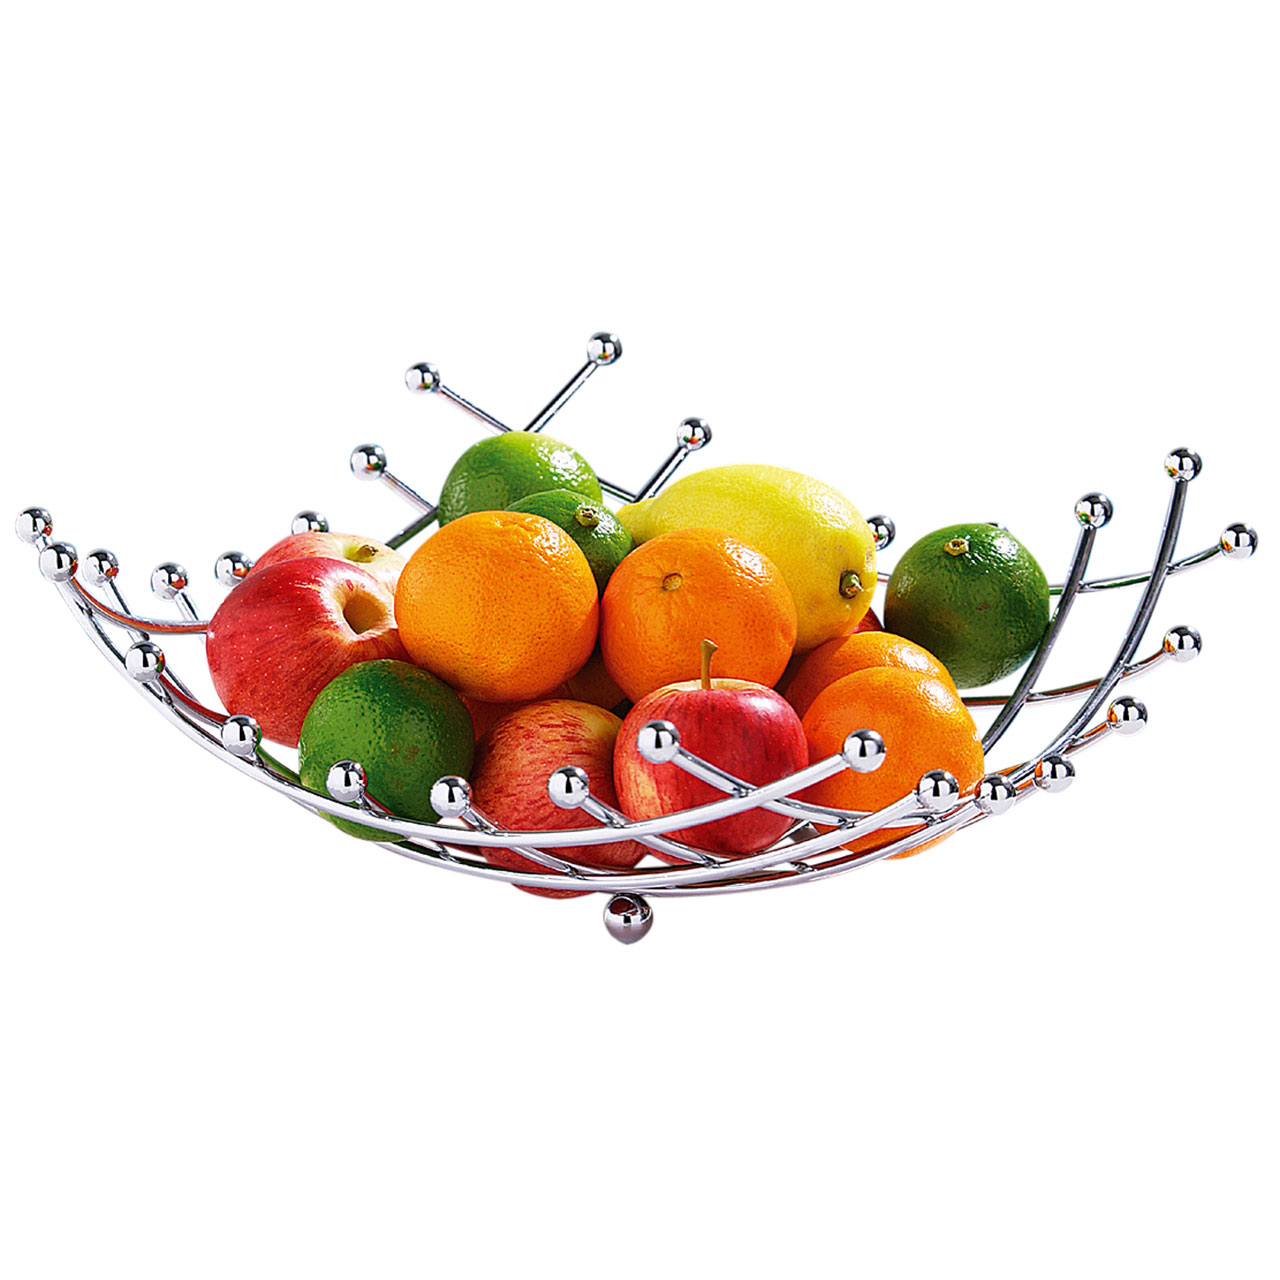 1280x1280 Silver Chrome Wire Lattice Criss Cross Fruit Vegetable Basket Bowl